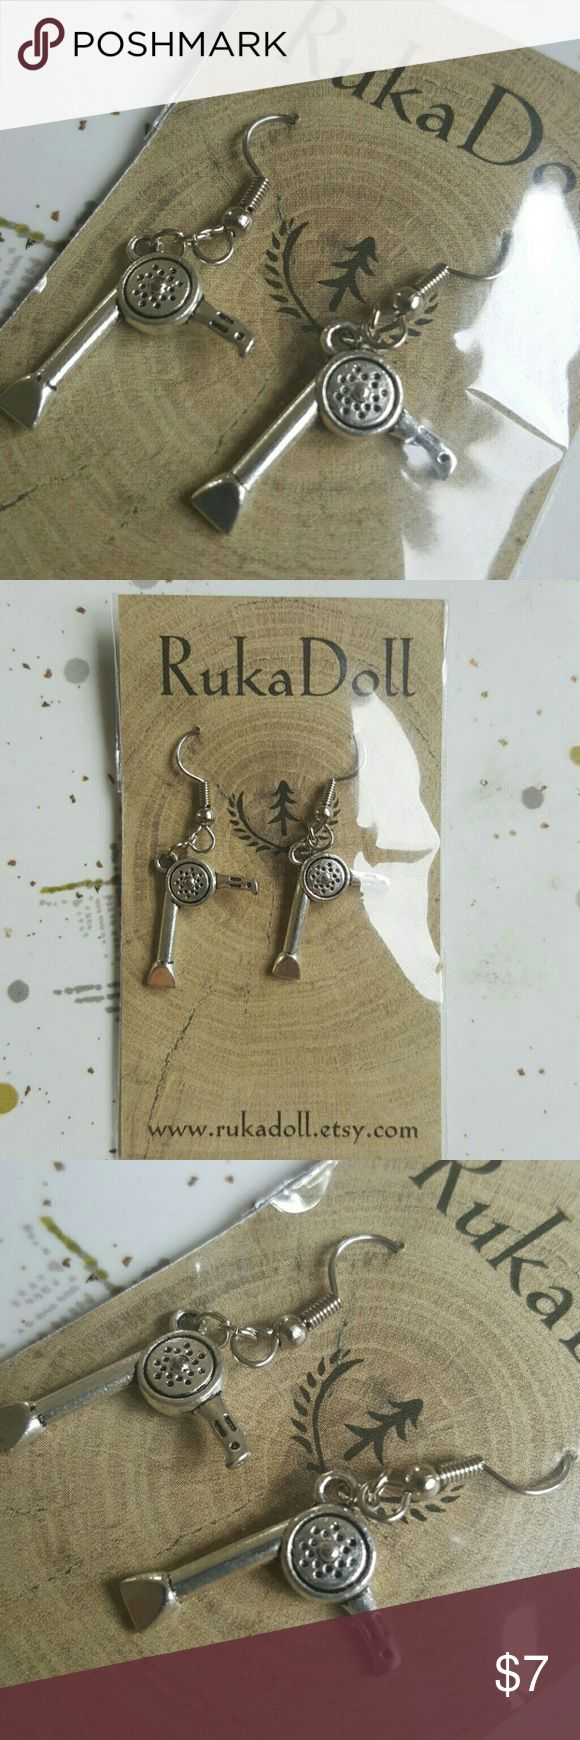 Hair Dryer Earrings Bitty miniature hair dryer charms. Great gift for your stylist!Surgical steel earwires for sensitive ear wearing comfort. Zinc alloy metal charms with antique silver finish. Brand new never worn. Handmade by me at RukaDoll RukaDoll Jewelry Earrings